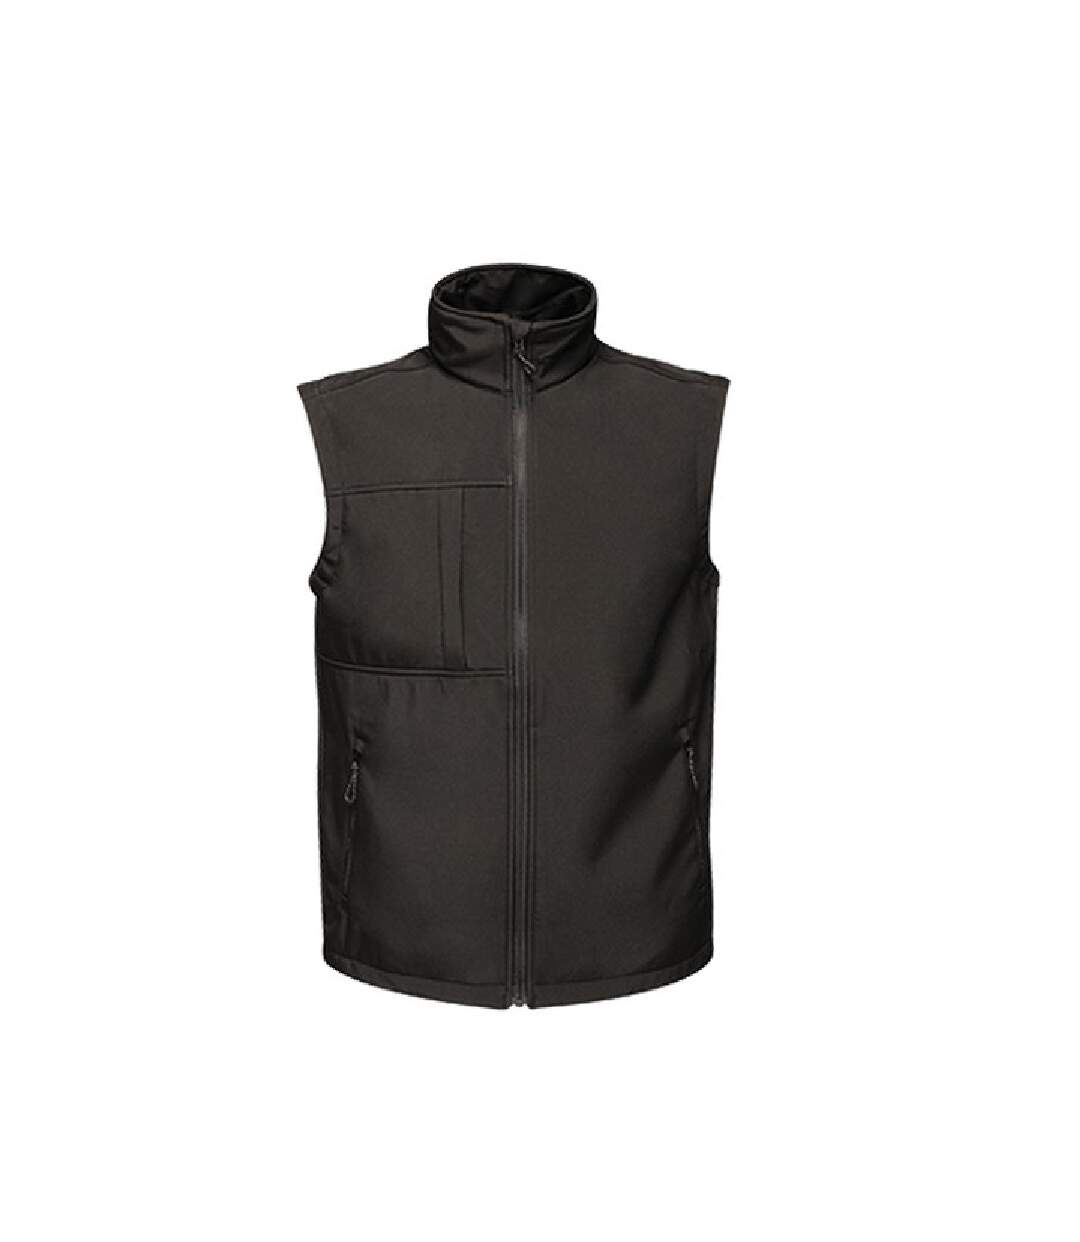 Regatta Mens Octagon II Printable Soft Shell Bodywarmer (Black/Black) - UTPC3297